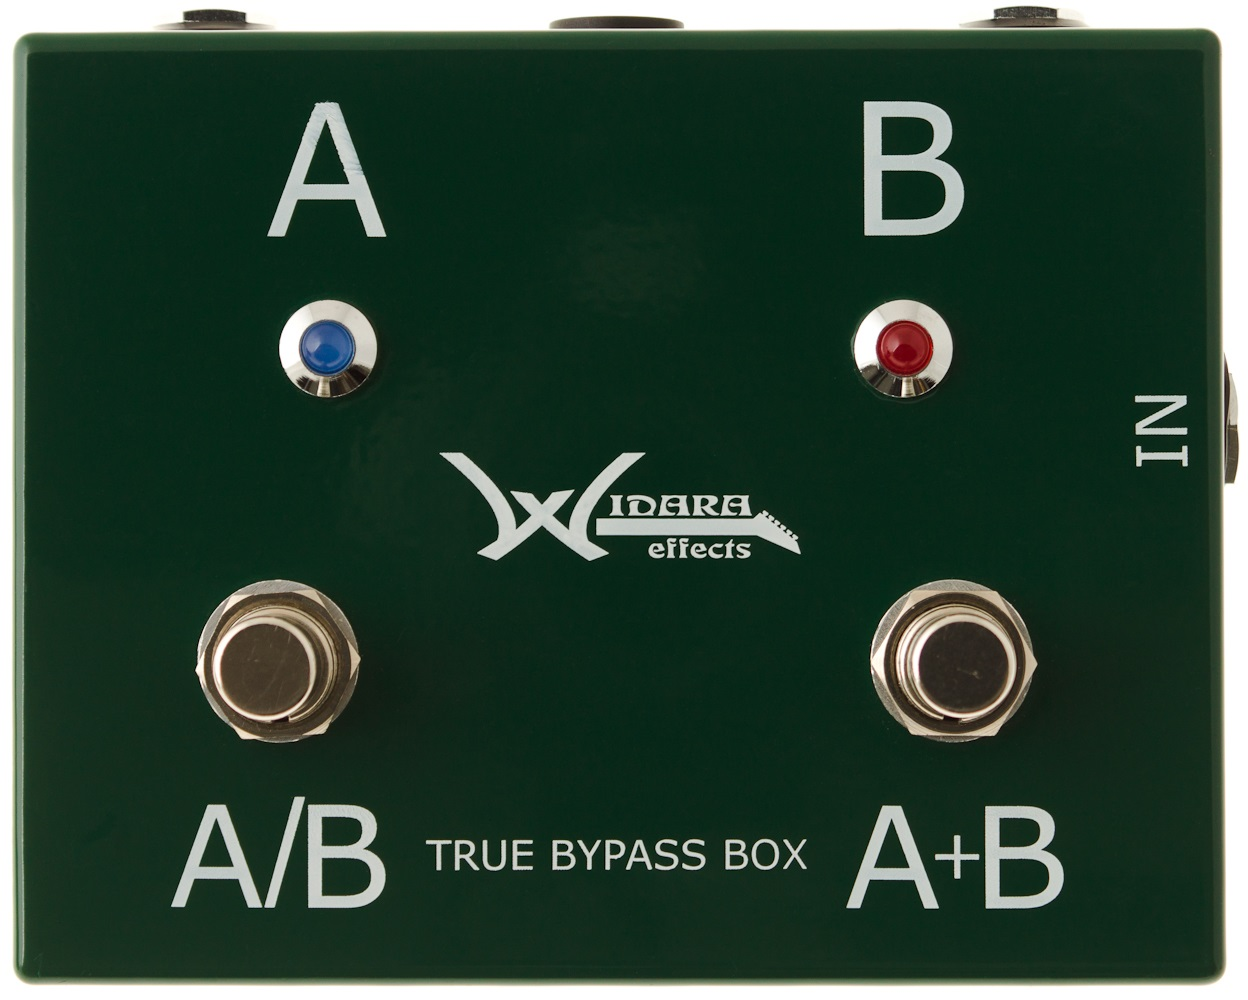 Widara AYB Box Green